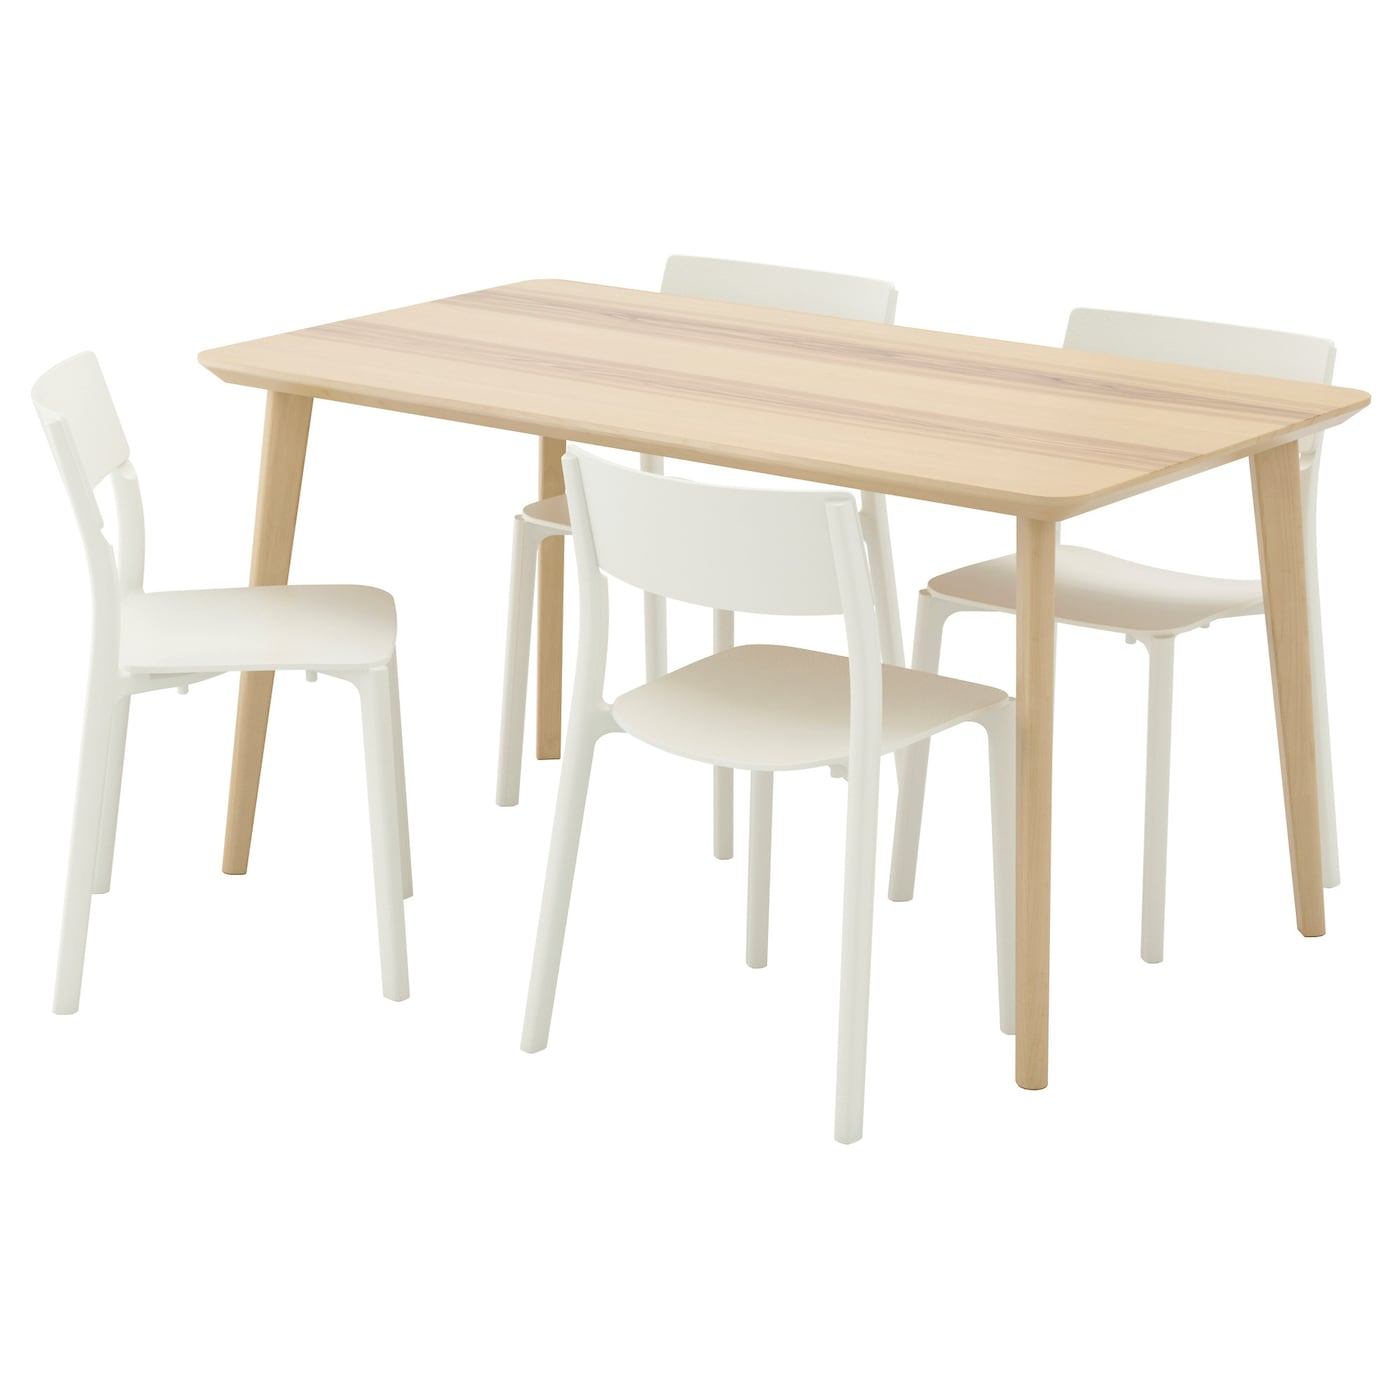 Dining table sets dining room sets ikea - Table pour cuisine ikea ...